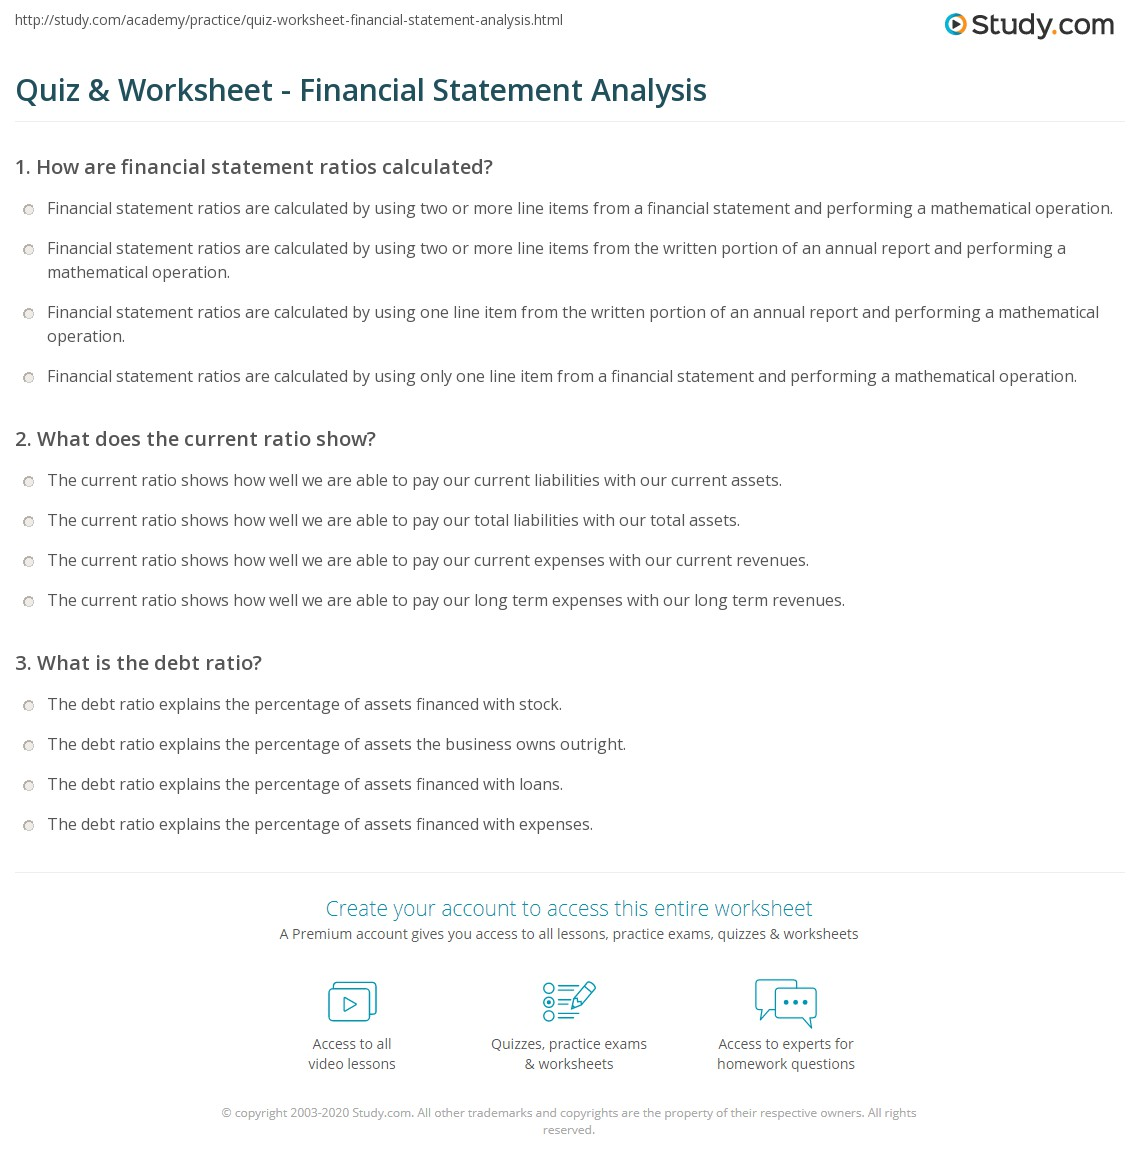 Ratio And Financial Statementysis